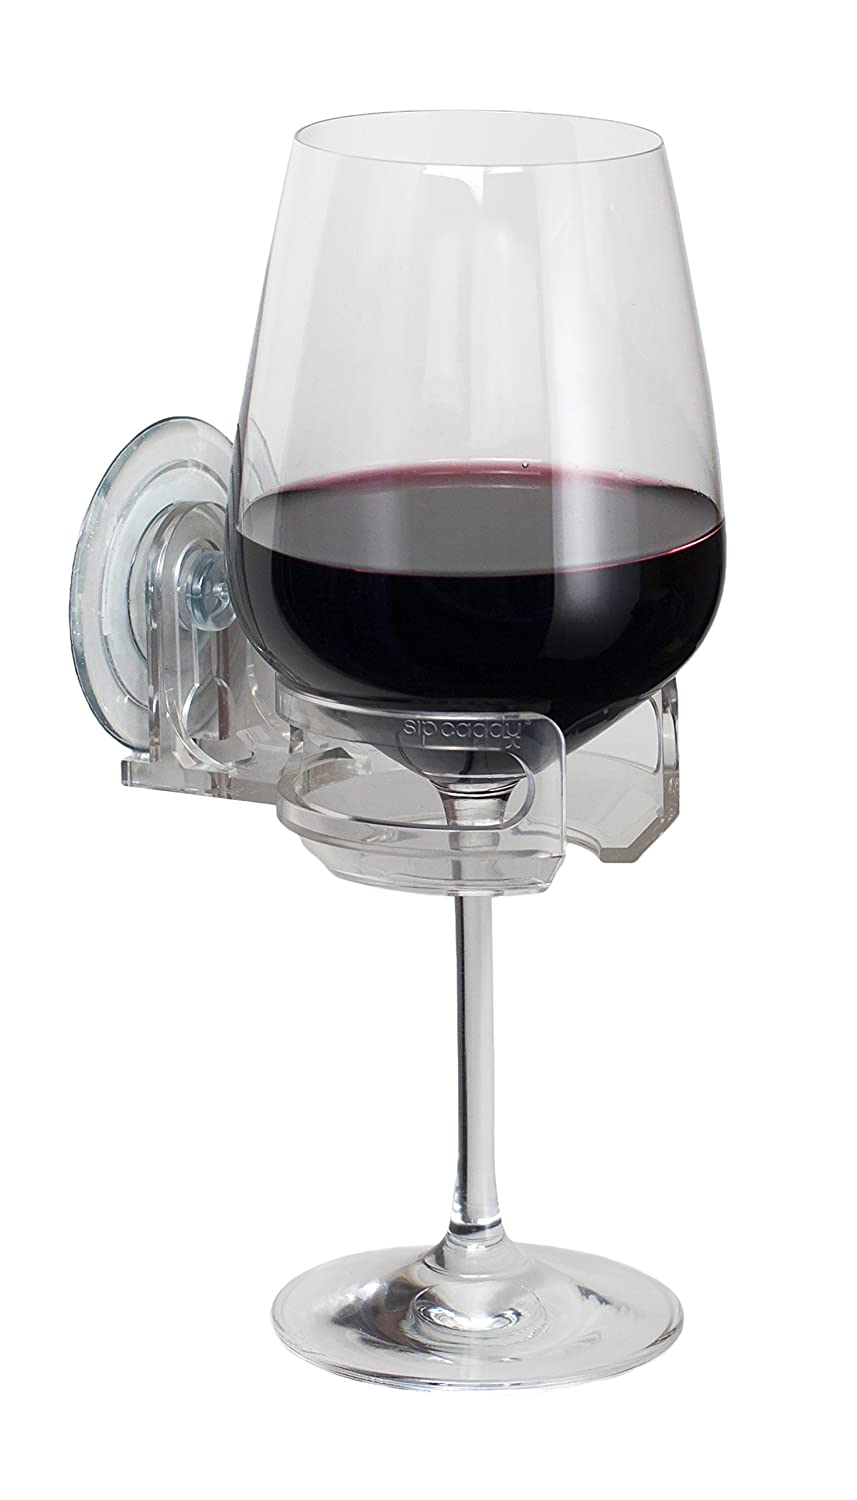 Wine Glass With Wine Part - 38: Amazon.com: SipCaddy Bath U0026 Shower Portable Suction Cupholder Caddy For  Beer U0026 Wine, Clear: Home U0026 Kitchen